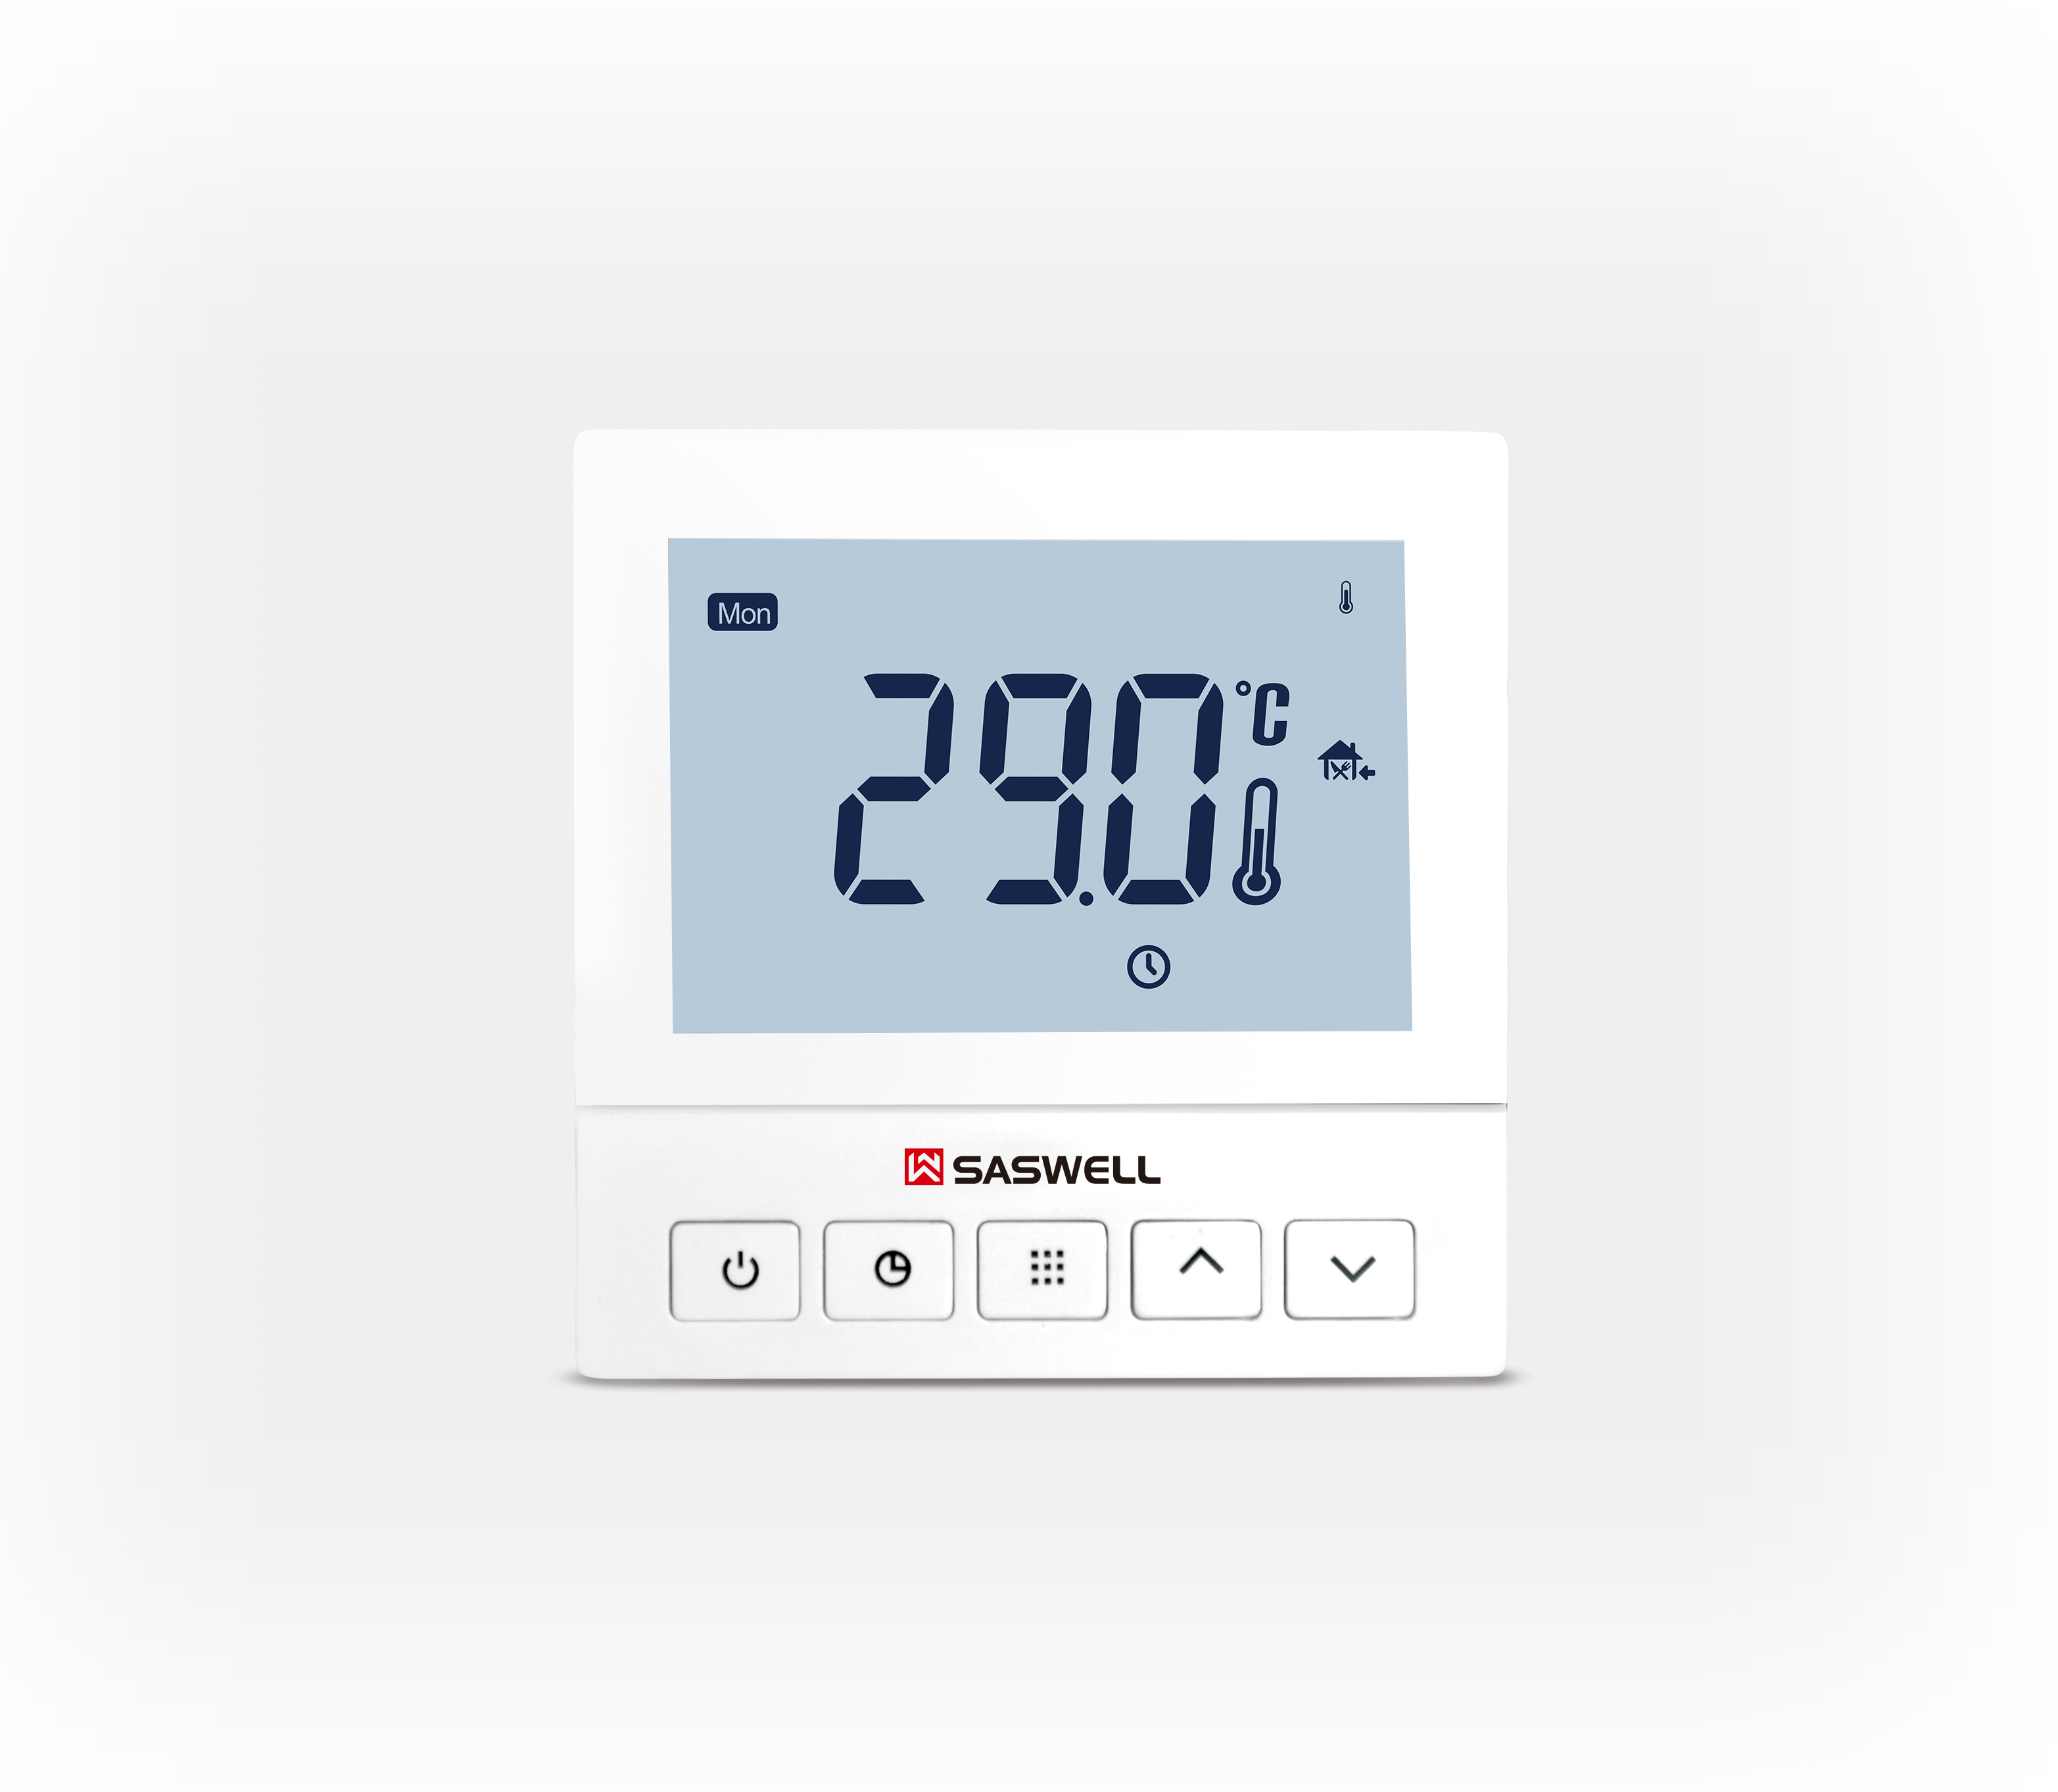 Heating Thermostat Wifi Programmable Electric Underfloor Heating Thermostat View Underfloor Heating Thermostat Saswell Product Details From Shenzhen Saswell Technology